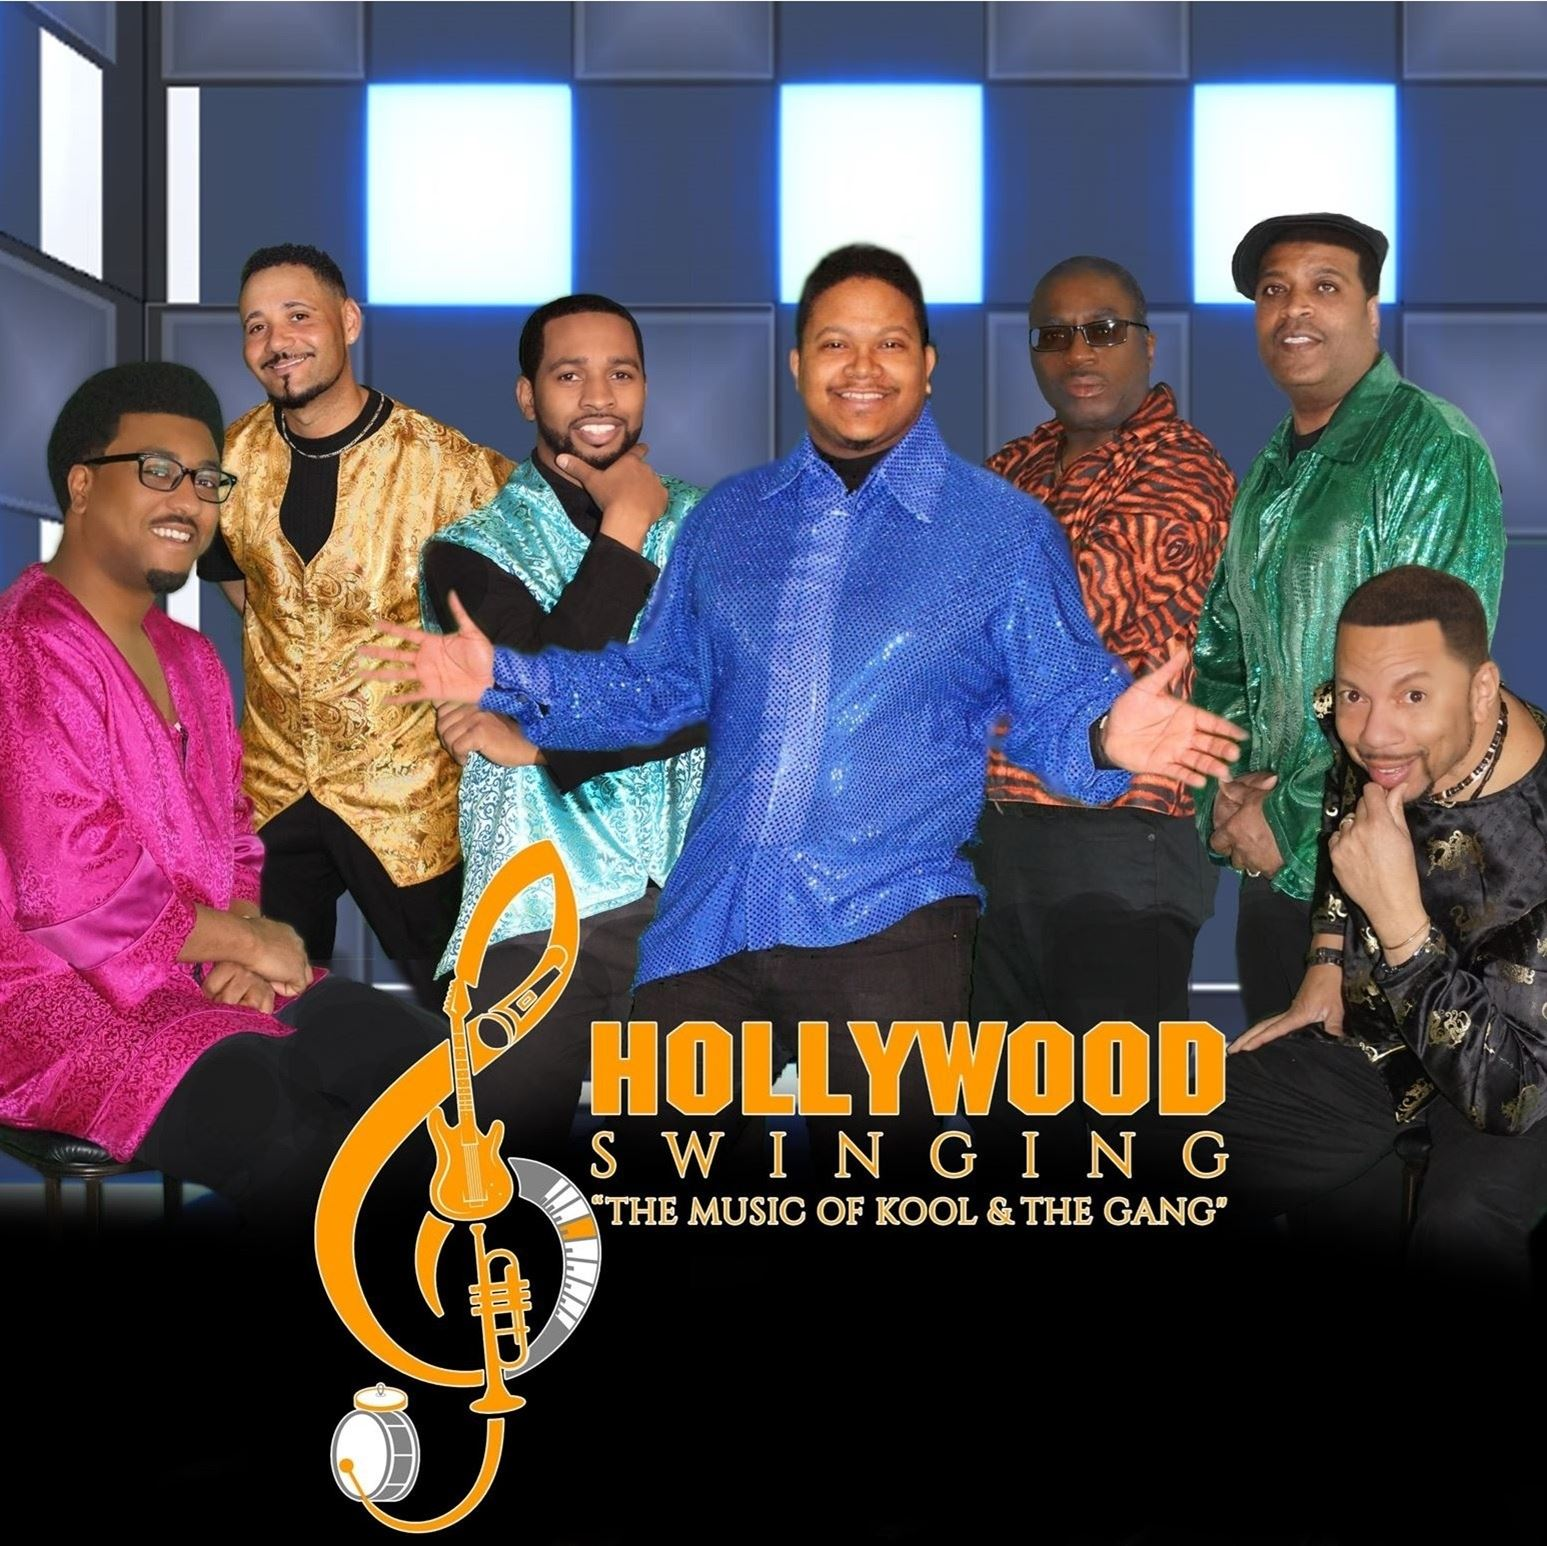 Hollywood Swinging, a tribute to